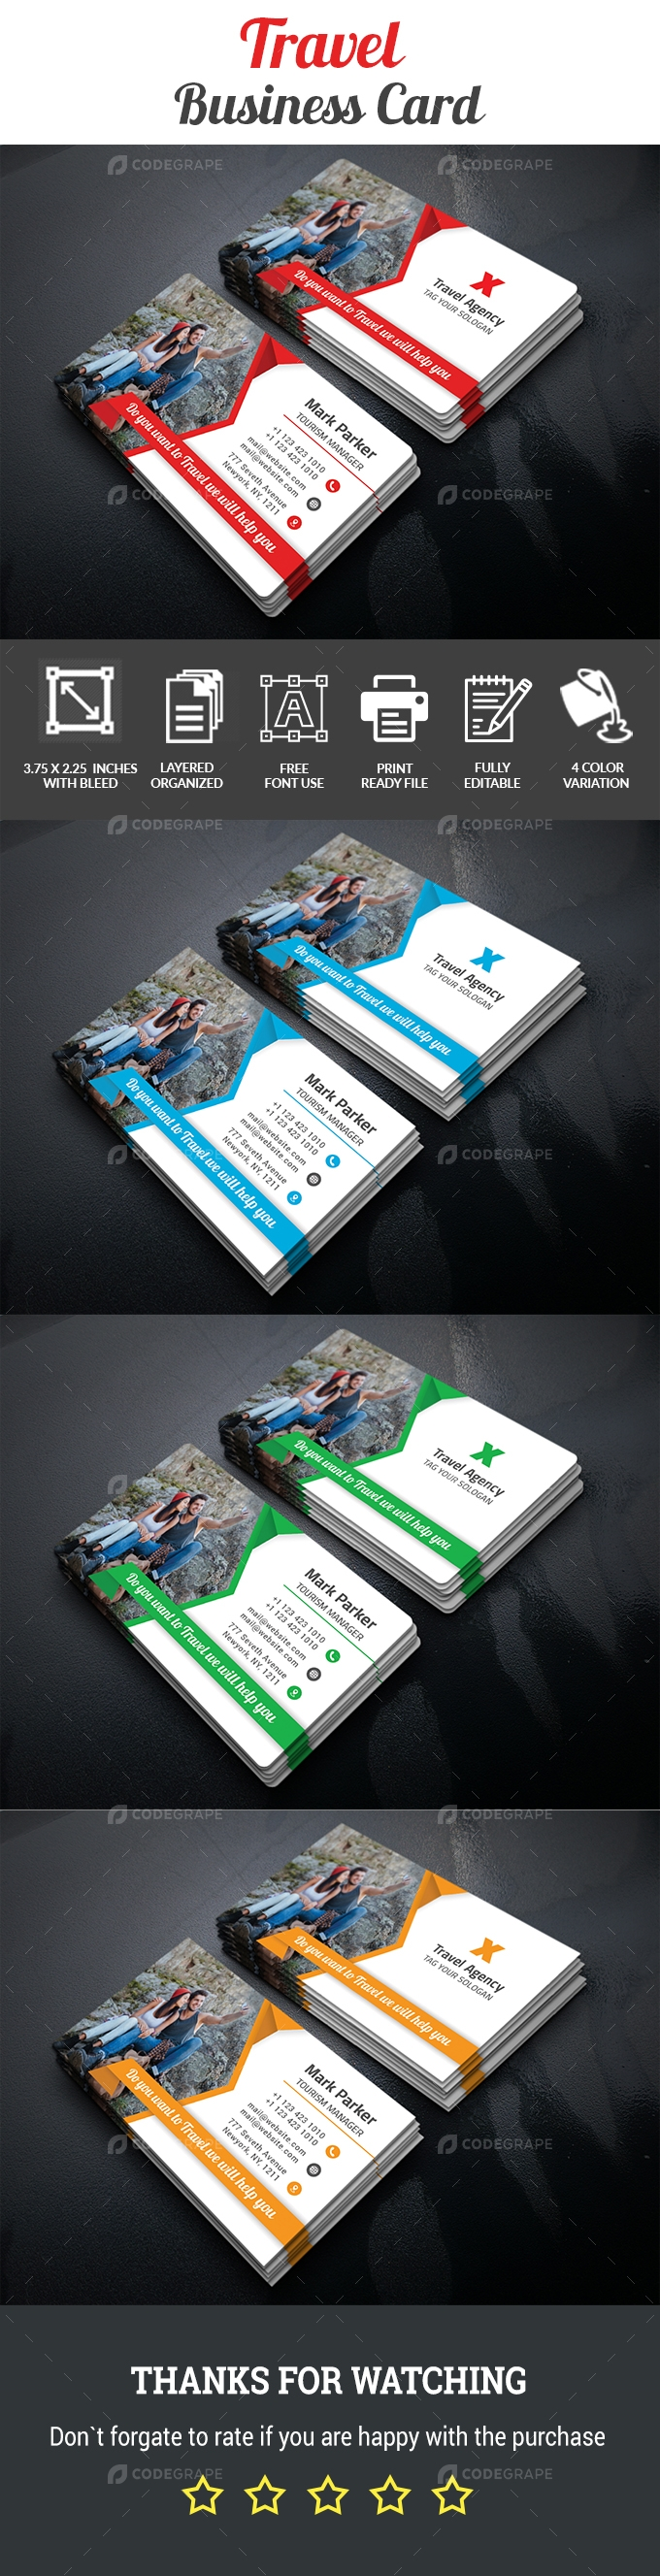 Corporate Travel  Business Card